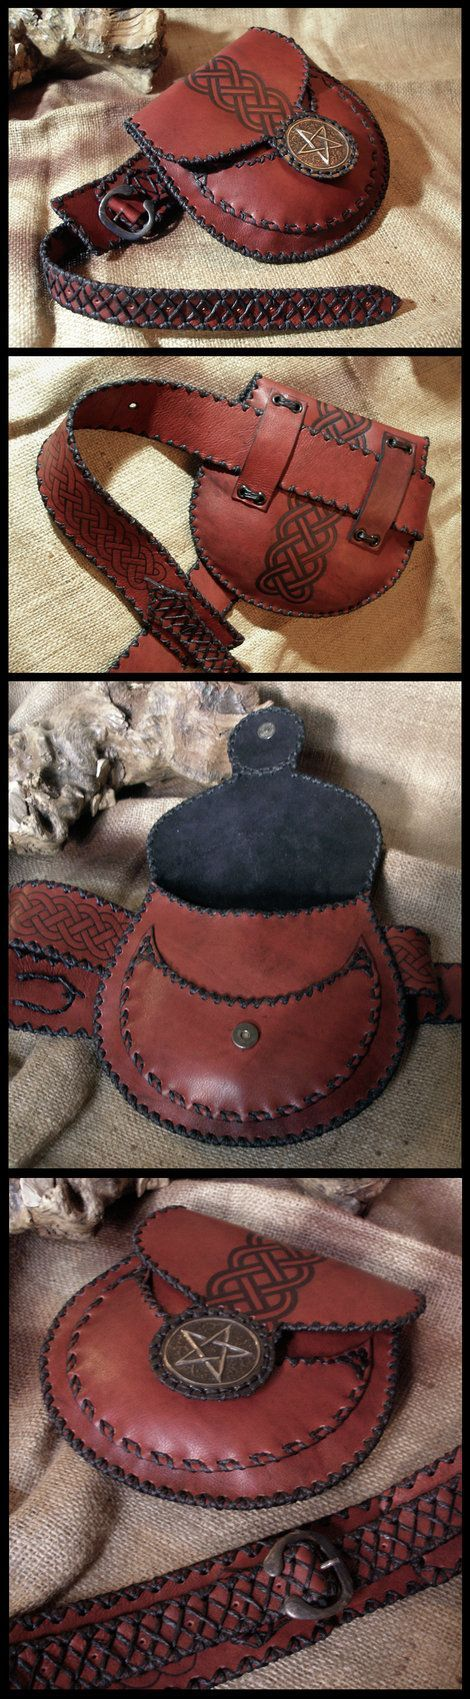 Leather waist pouch and belt by *morgenland: